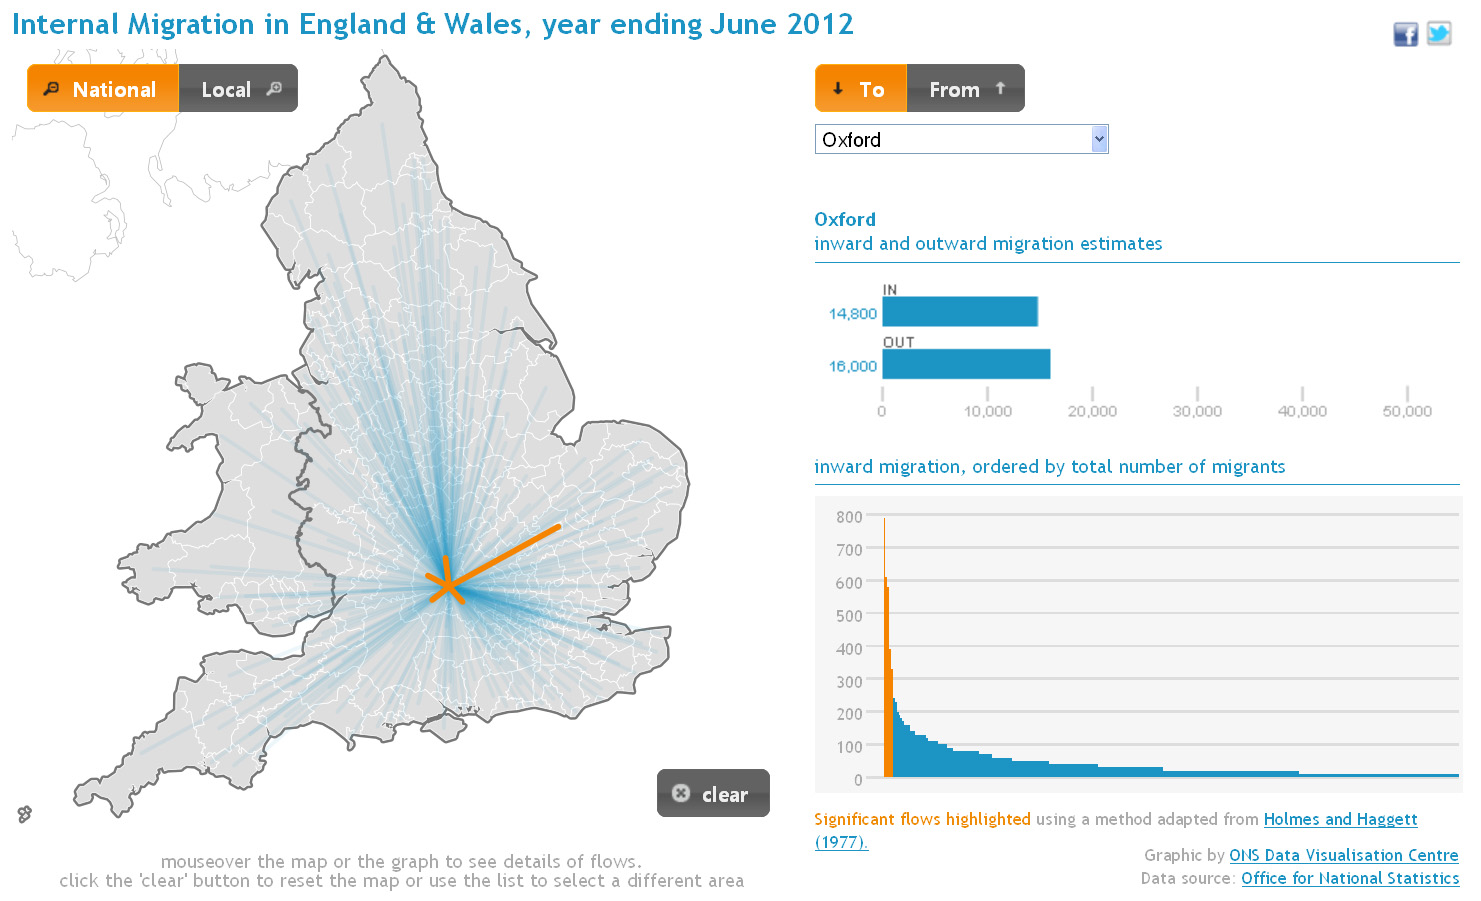 internal migration by local authorities in england and wales